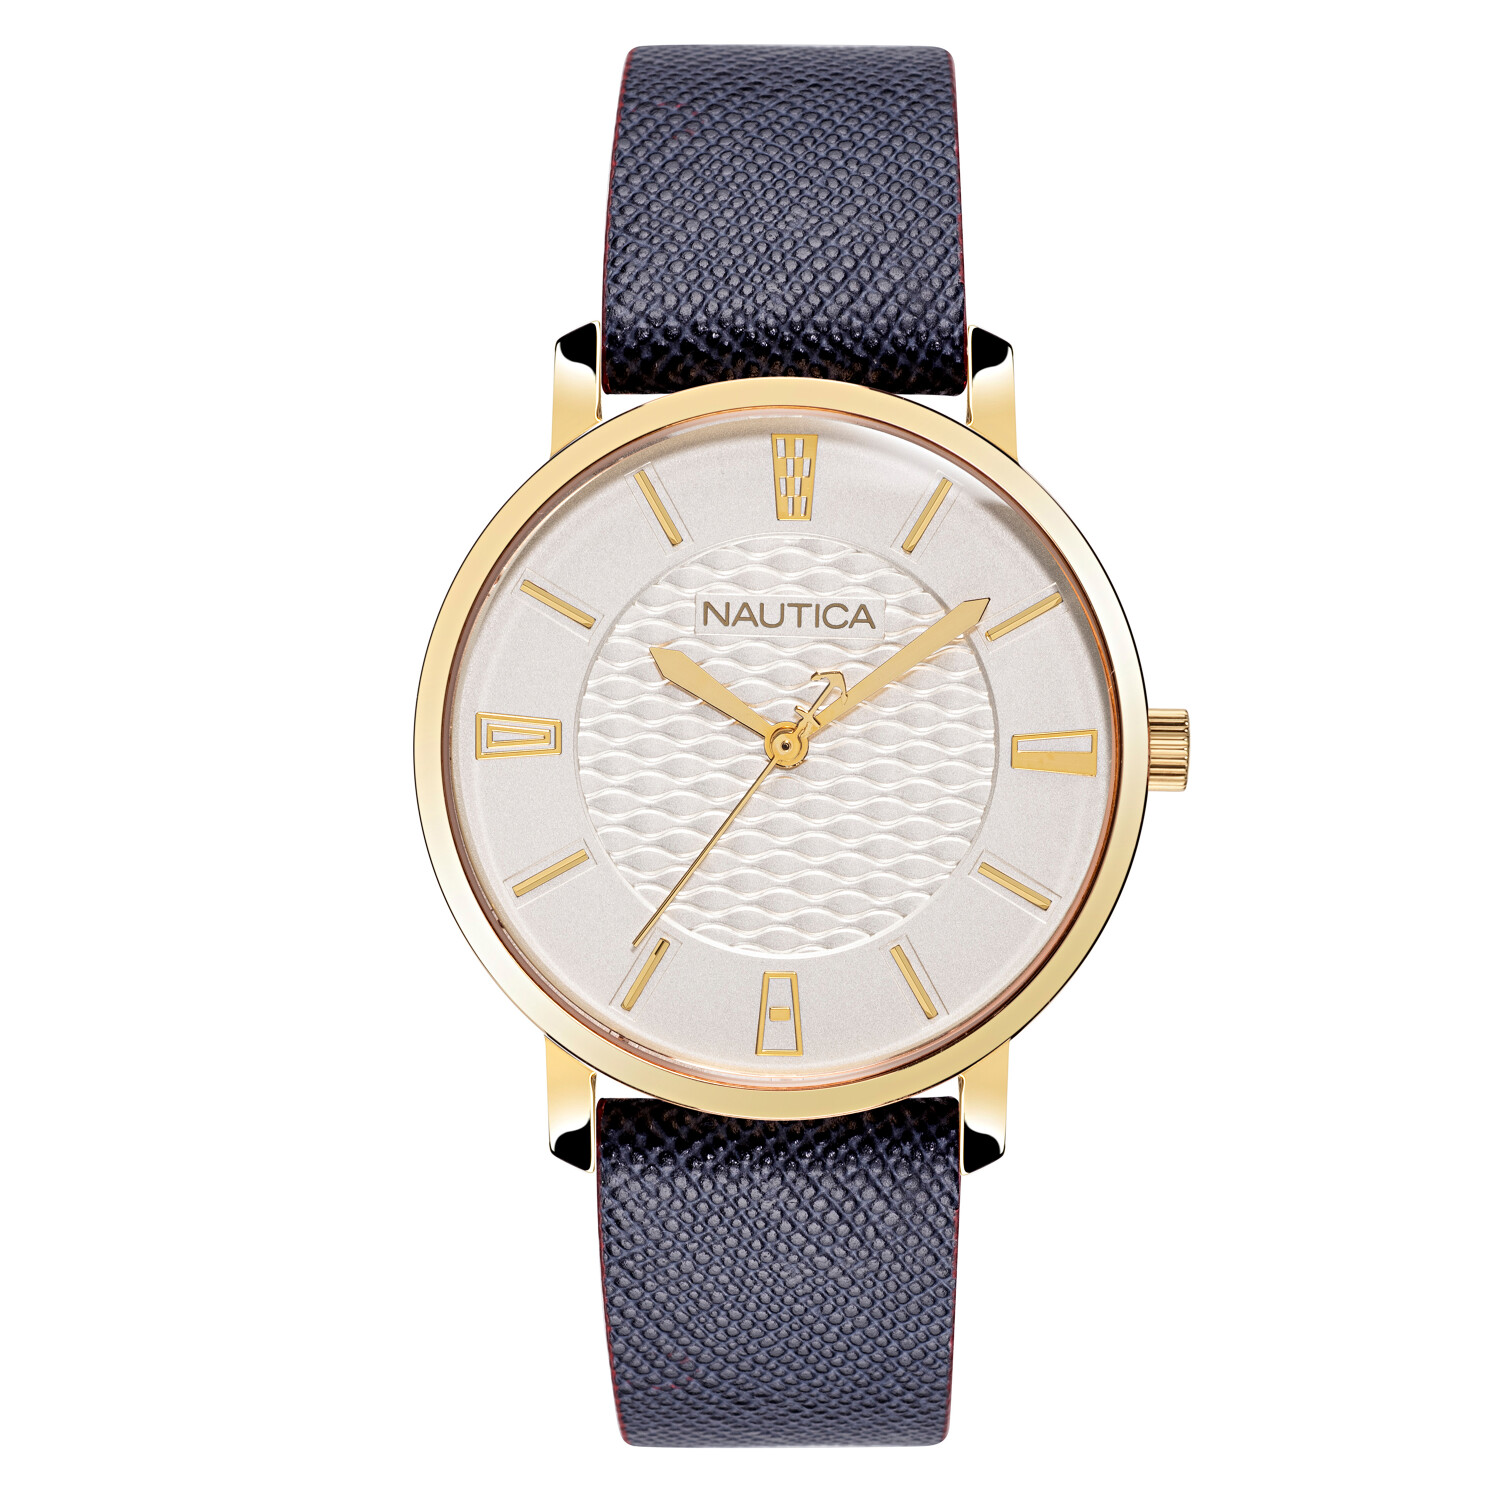 Nautica Watch NAPCGP903 Coral Gables, Analog, Water Resistant, Leather Strap, Adjustable Buckle, Snap Down Crown, Blue